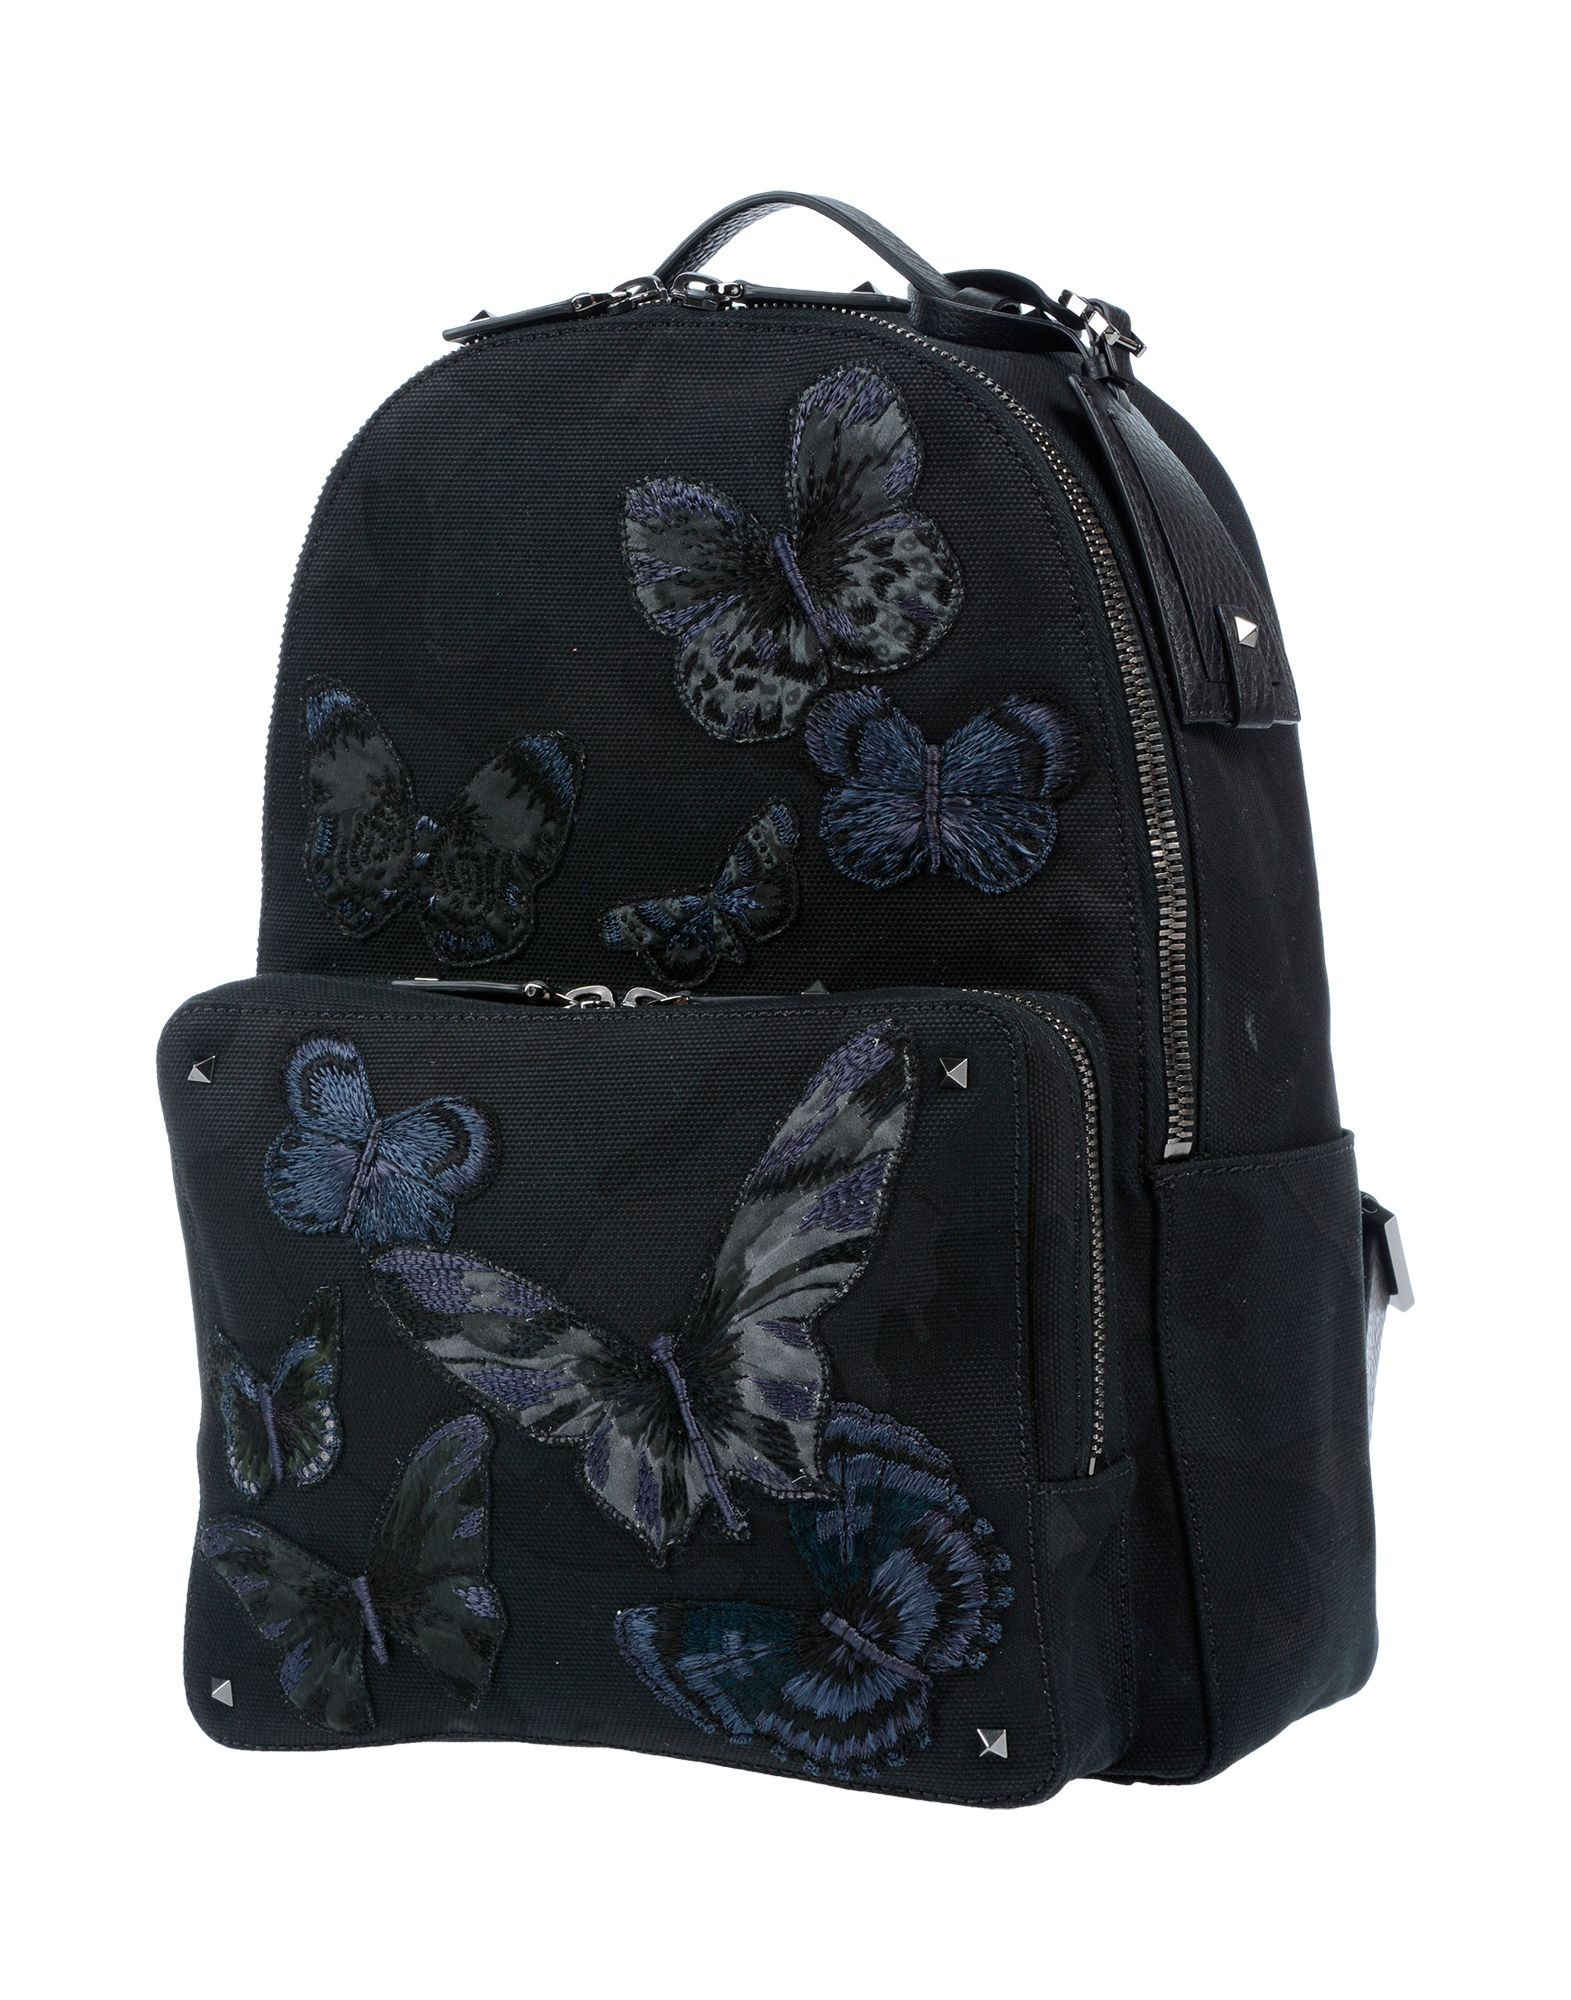 ee48630518b6 Camouflage Rucksacks   Bumbags Men - Spring-Summer and Autumn-Winter  Collections - YOOX United Kingdom